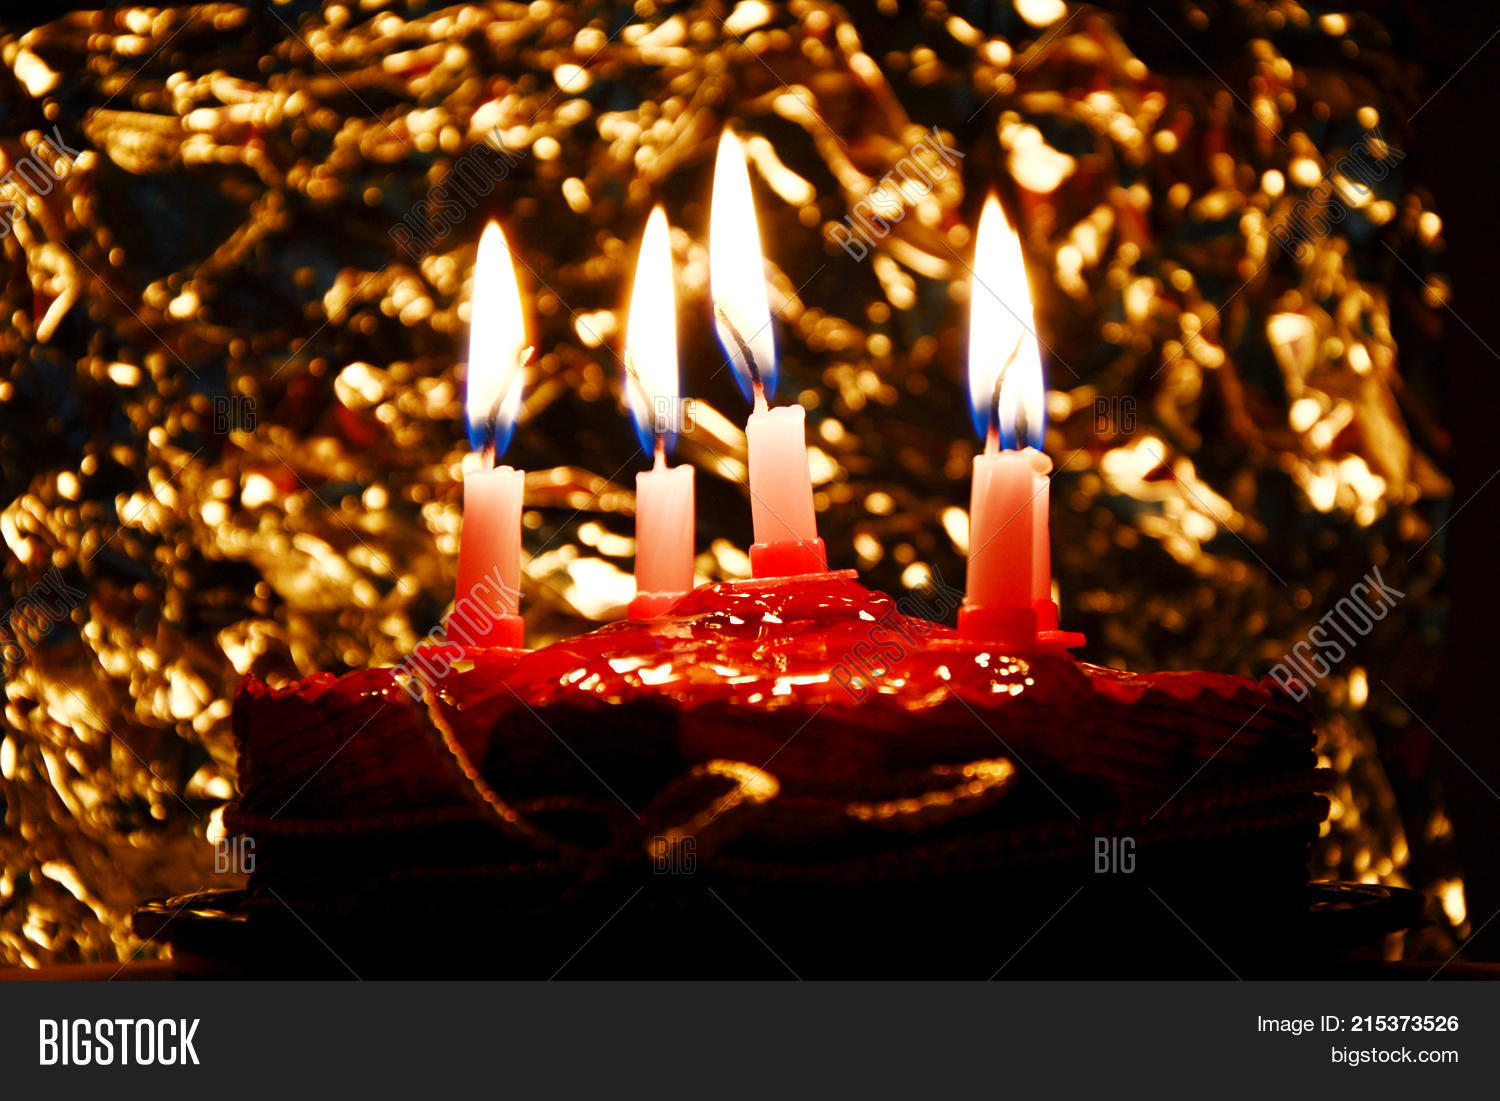 Magnificent Birthday Cake Candles Image Photo Free Trial Bigstock Personalised Birthday Cards Paralily Jamesorg